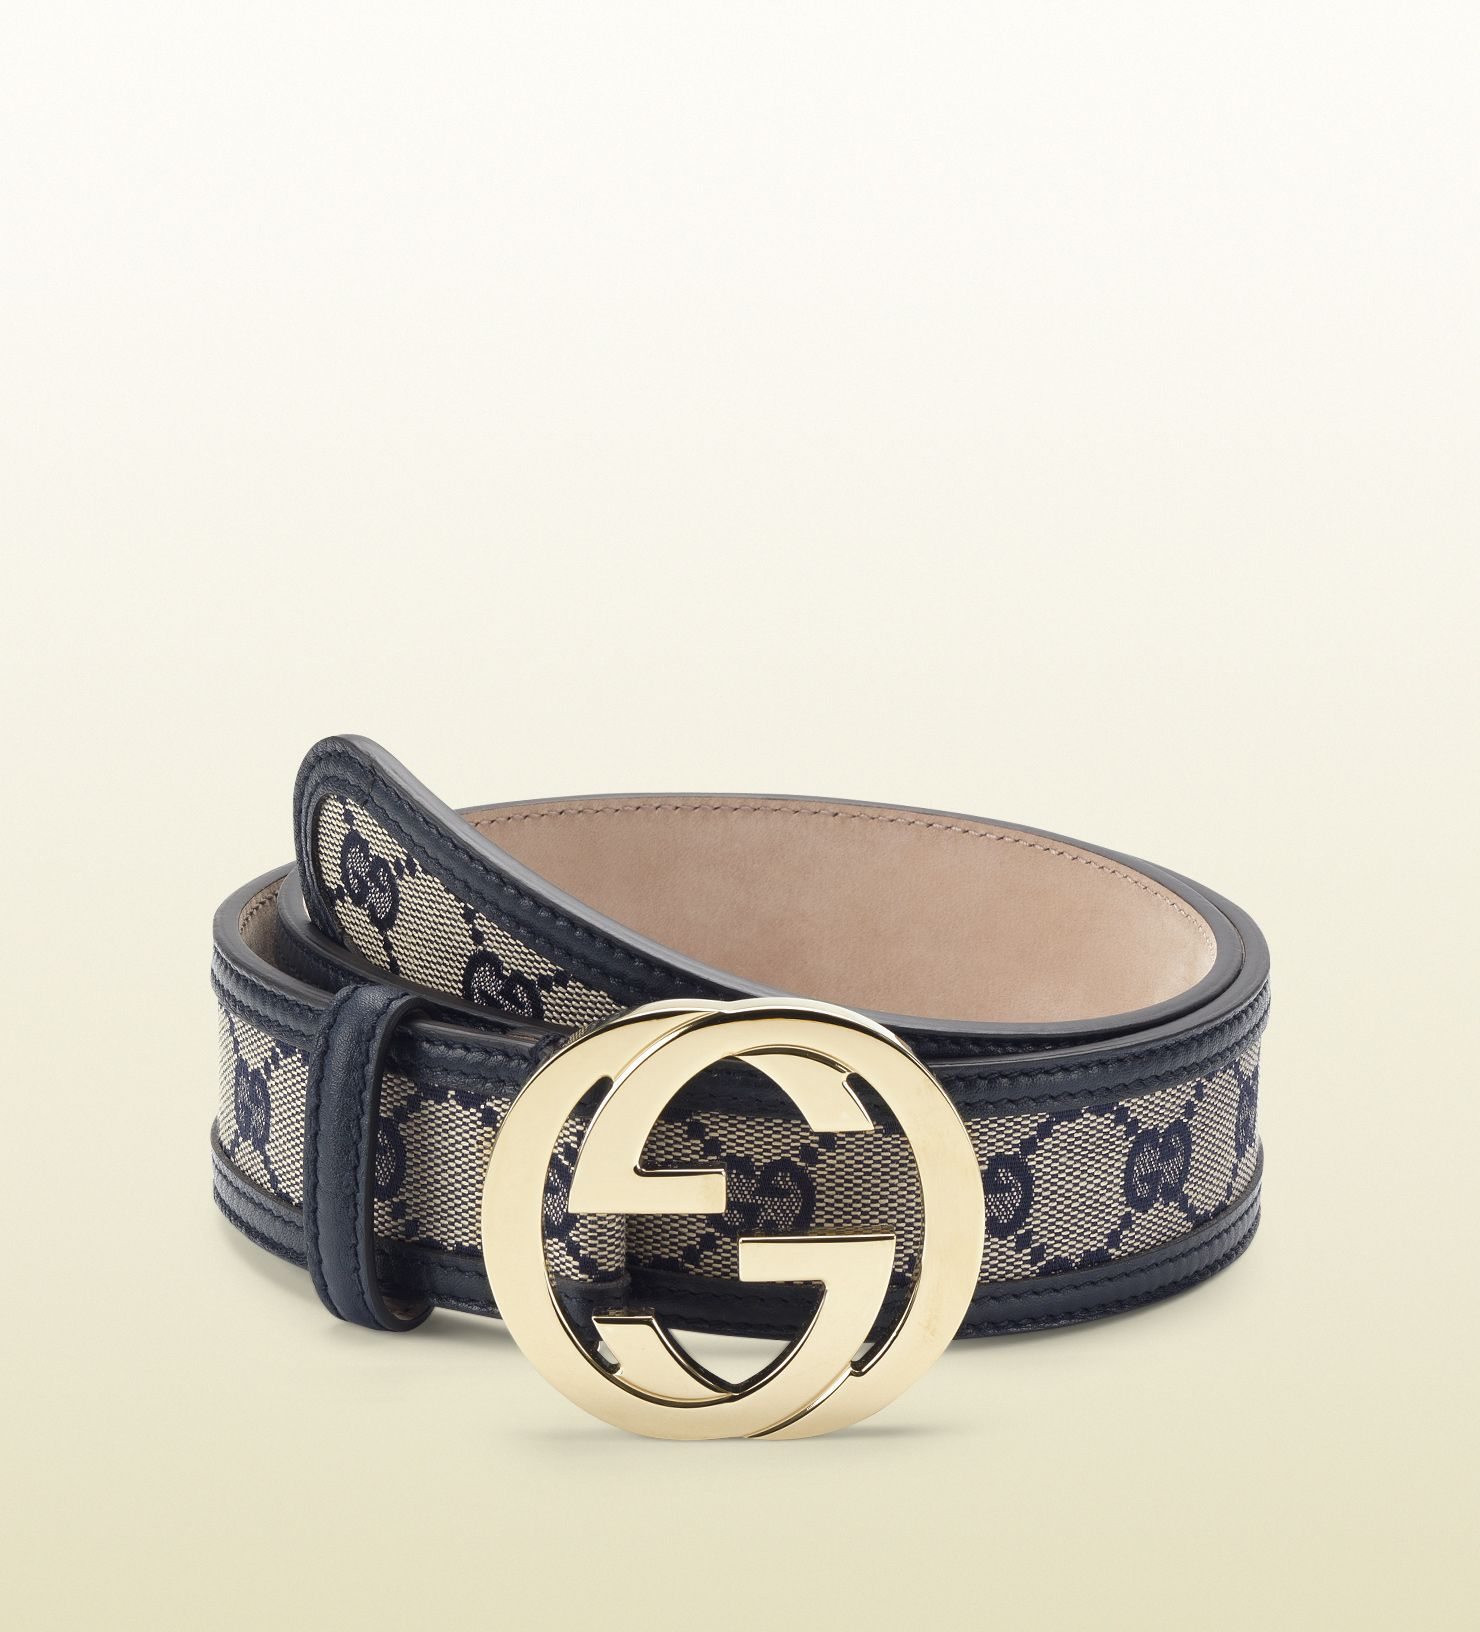 5cf497314 original GG canvas belt with interlocking G buckle | Leather goods ...